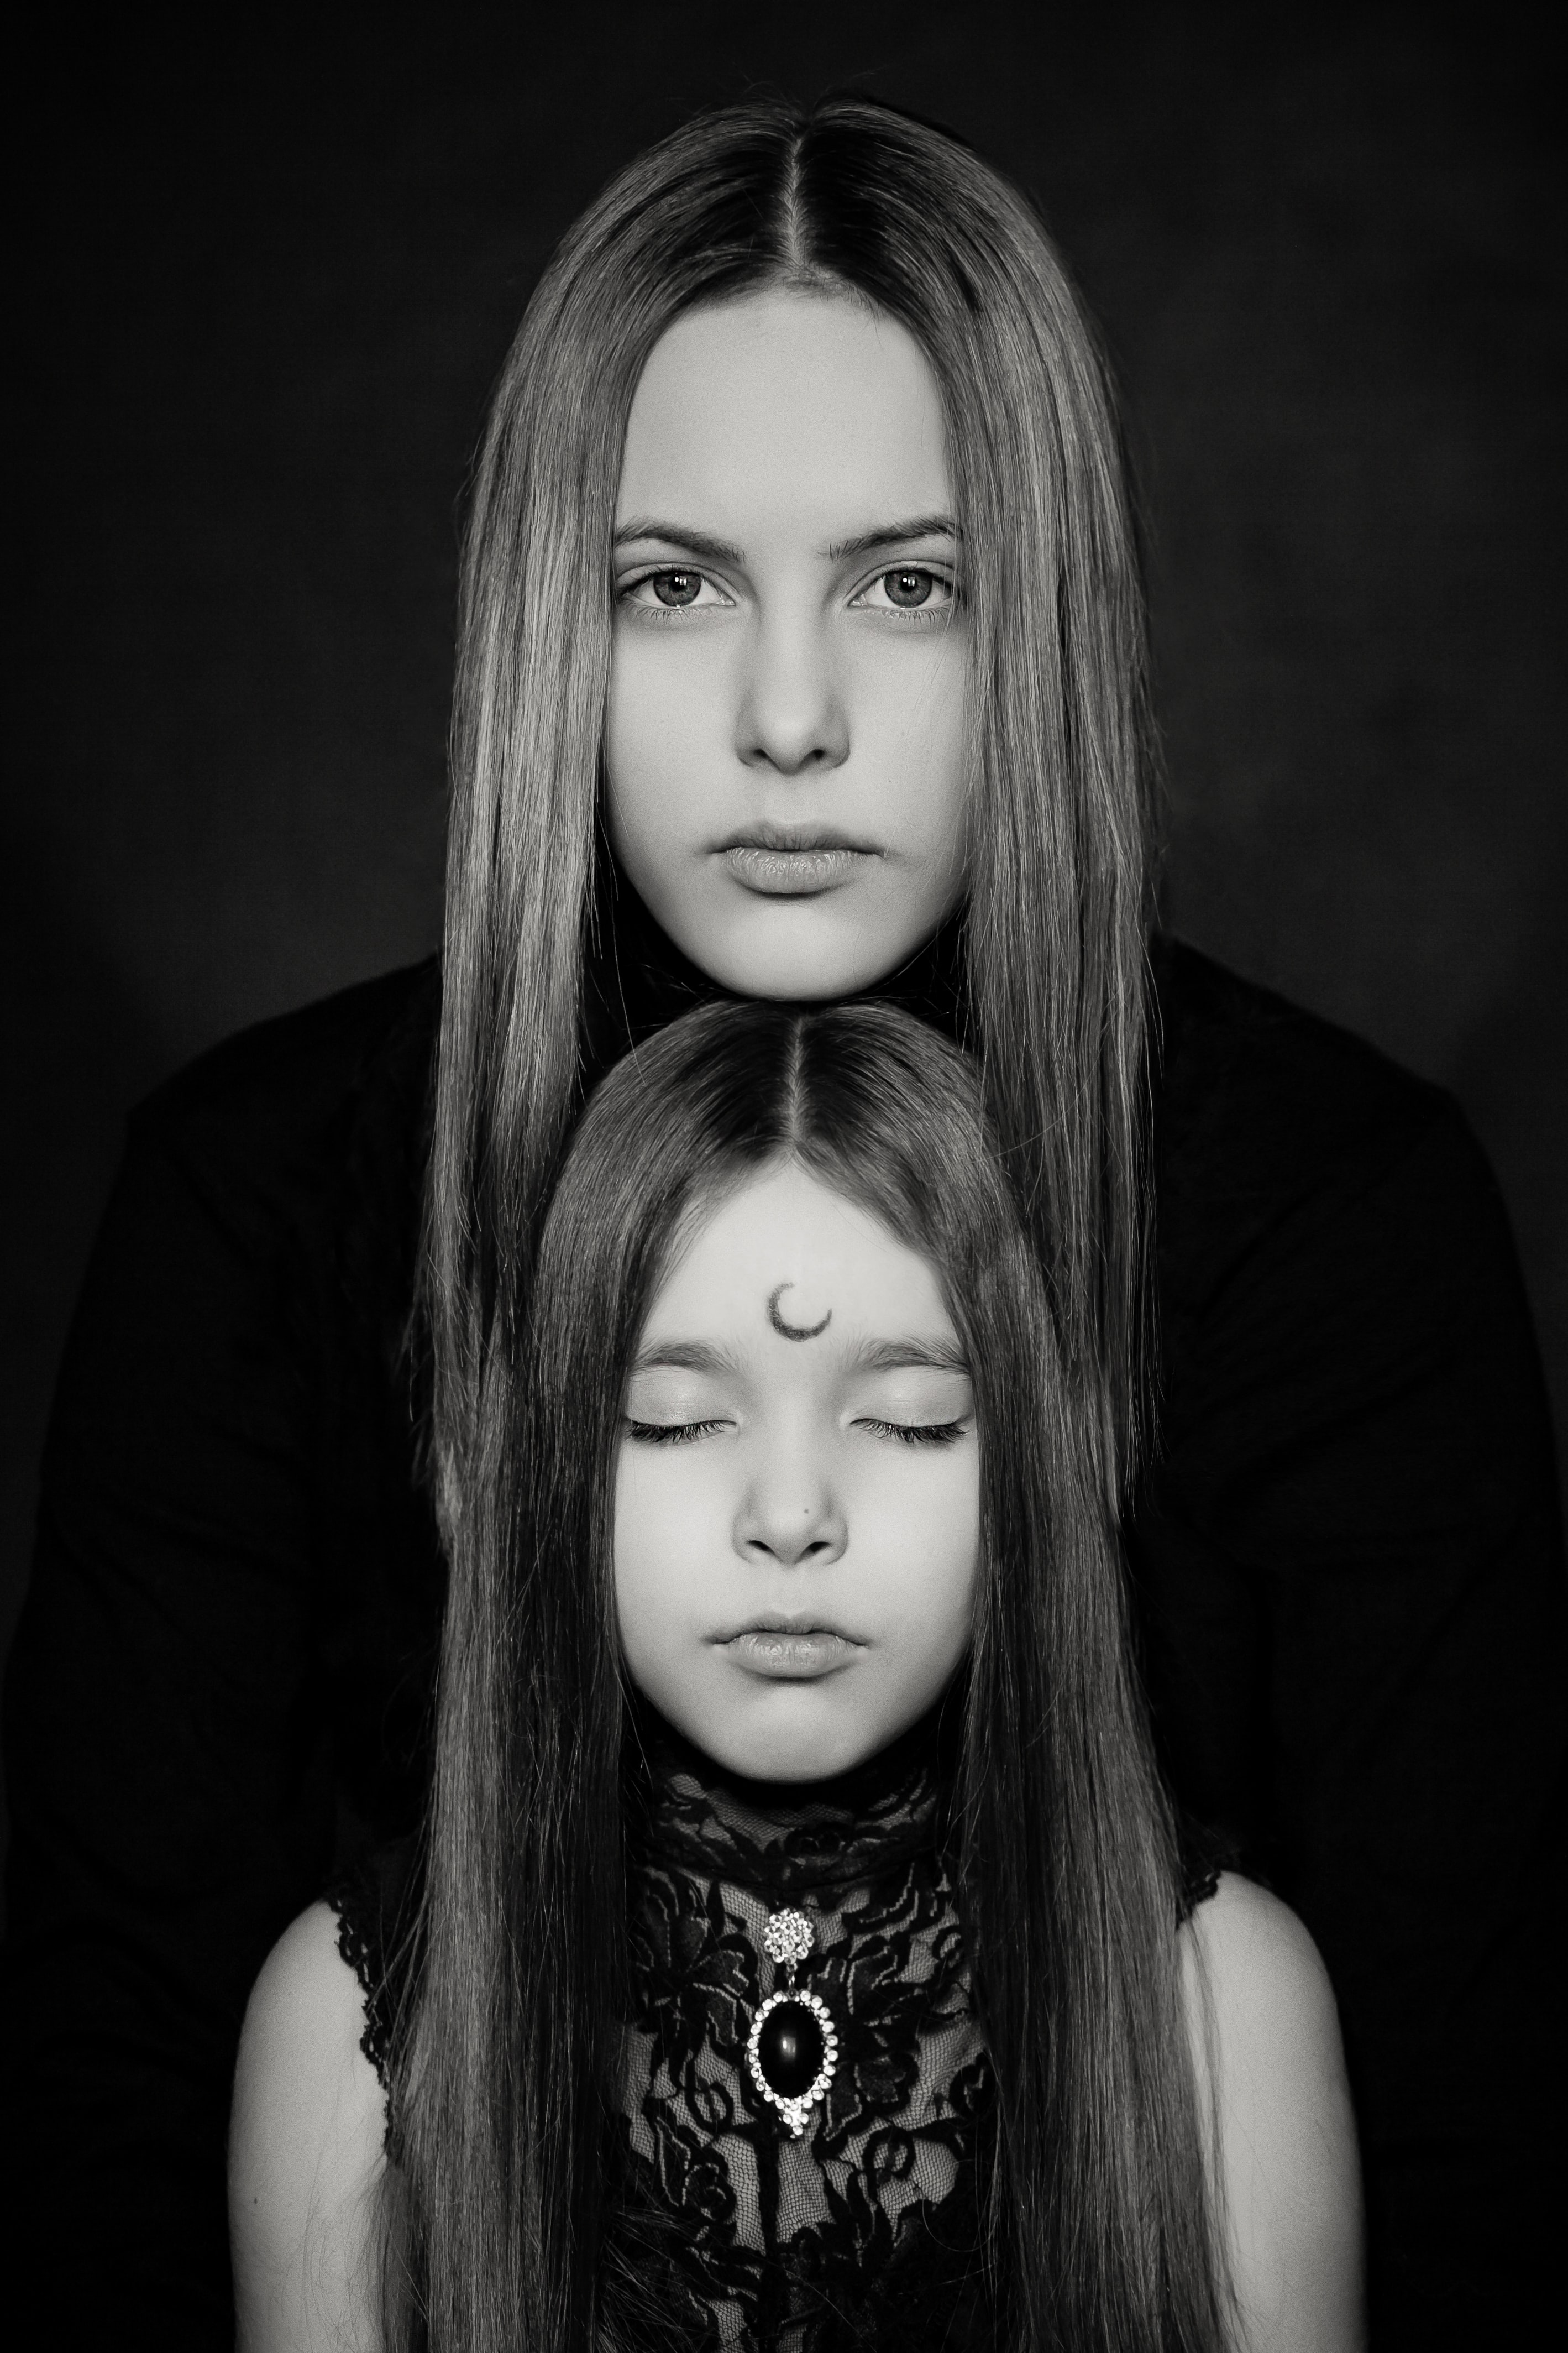 grayscale photography of two women